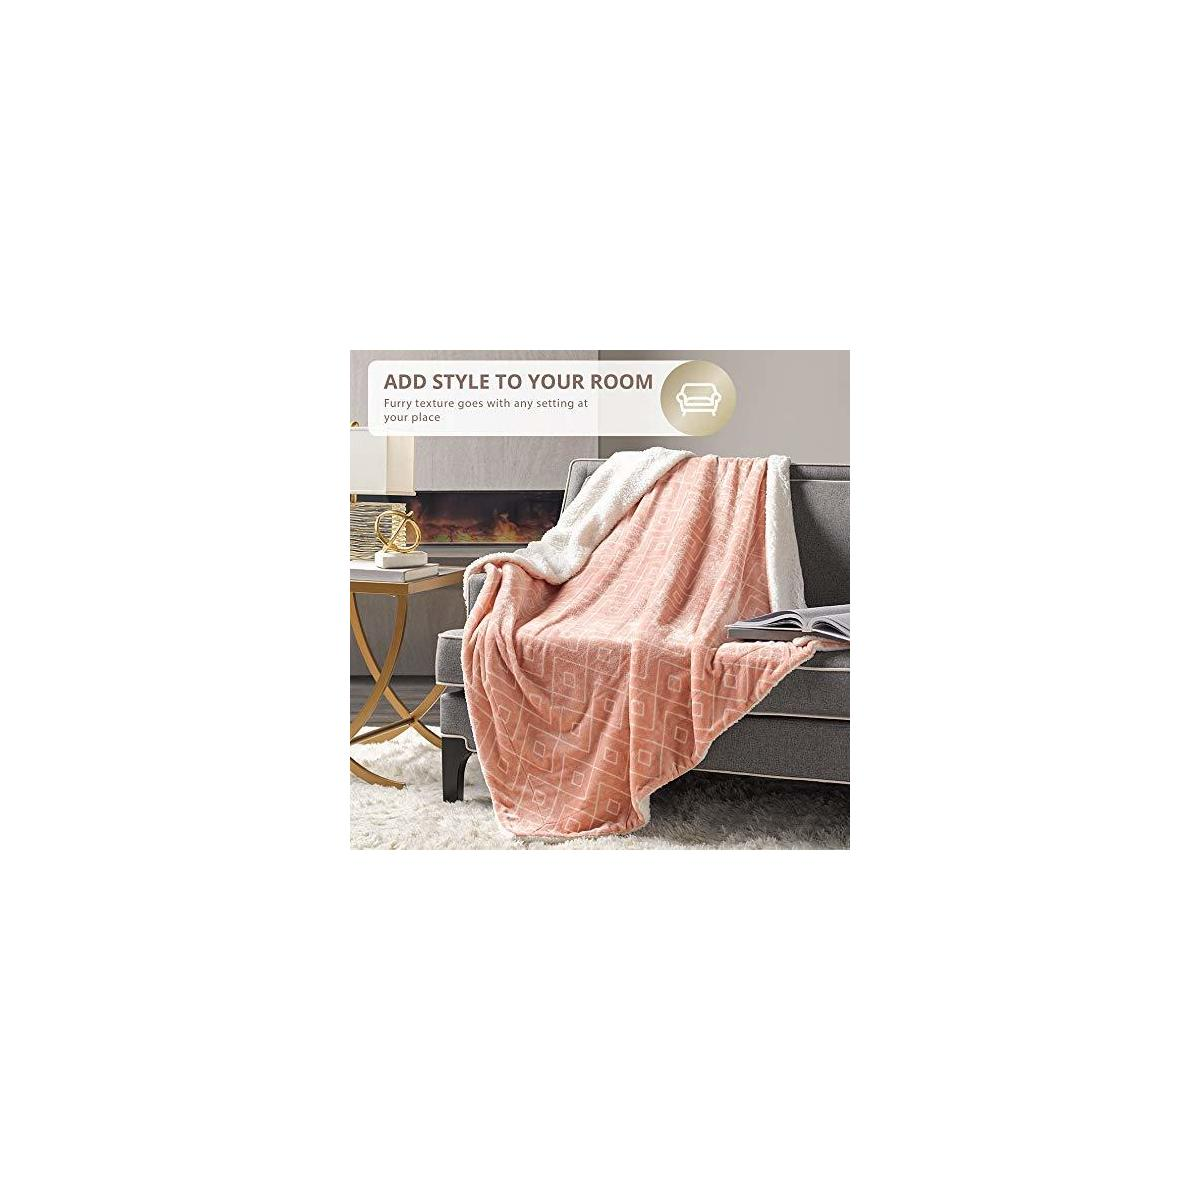 Hyde Lane Soft Sherpa Blanket for Couch & Bed – 2 Way Reversible Pink Throw Blanket with Cozy Fuzzy Faux Fur – Diamond Blush, 50x60